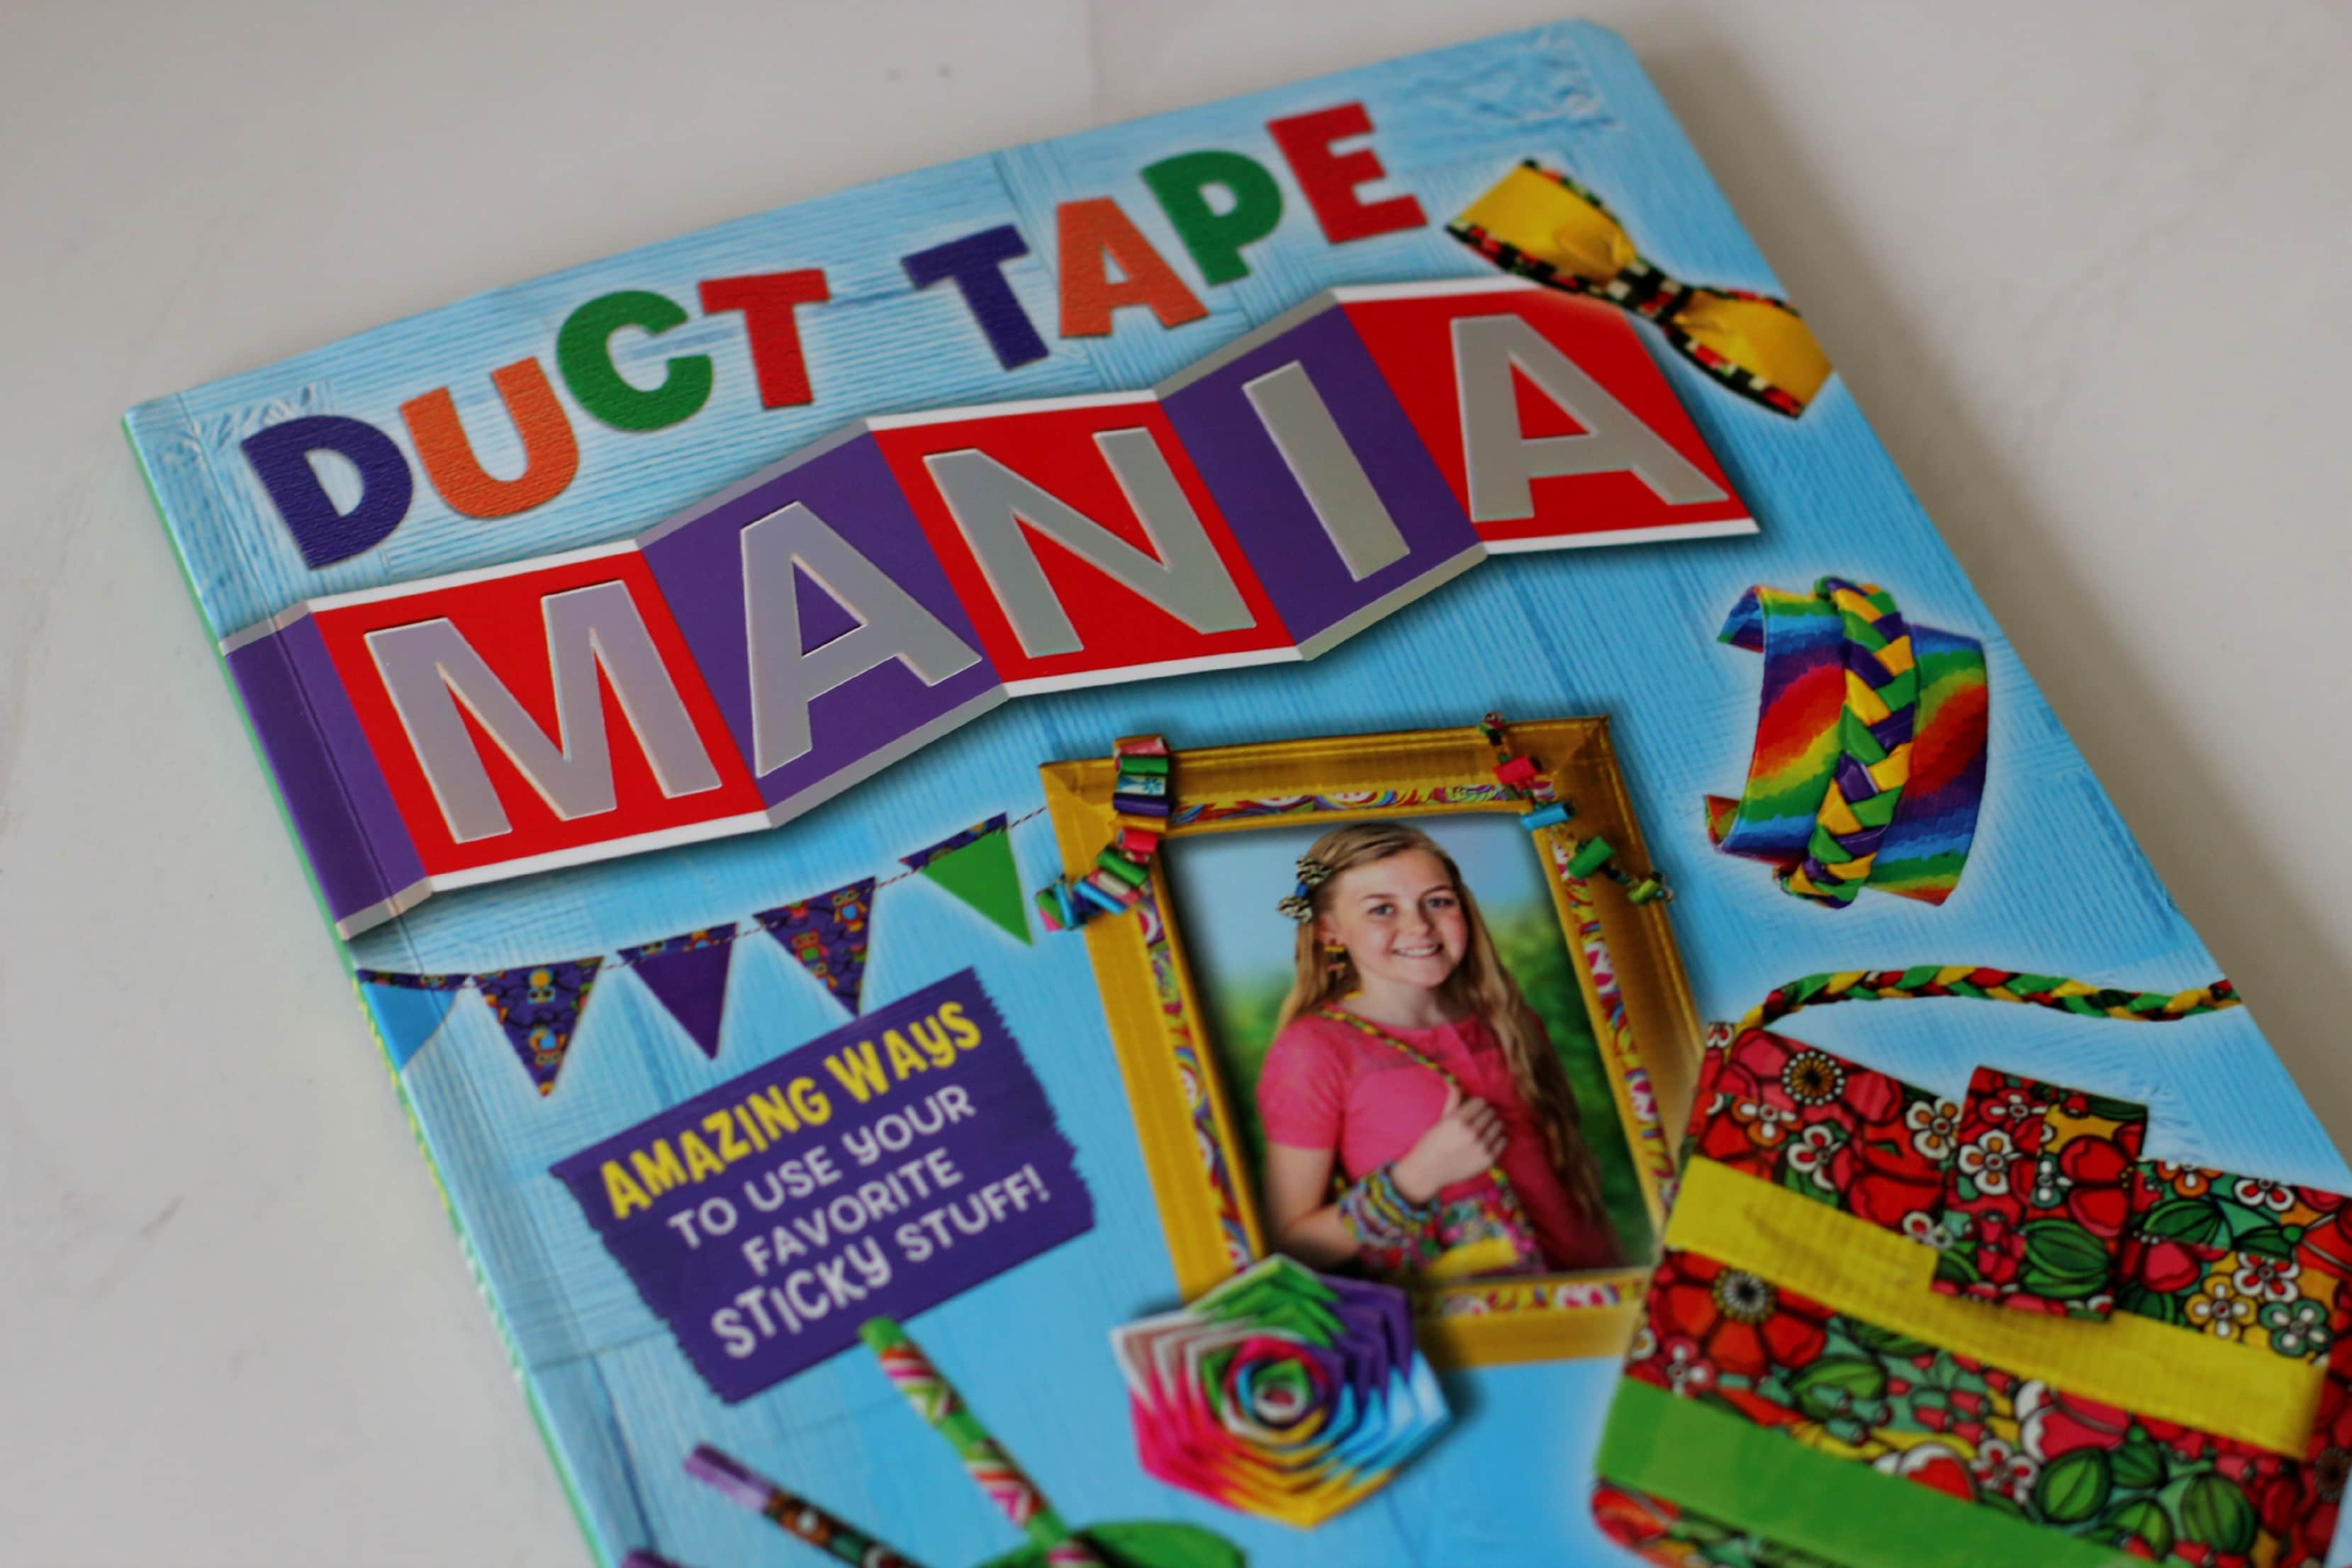 Duct Tape Mania book by Amanda Formaro